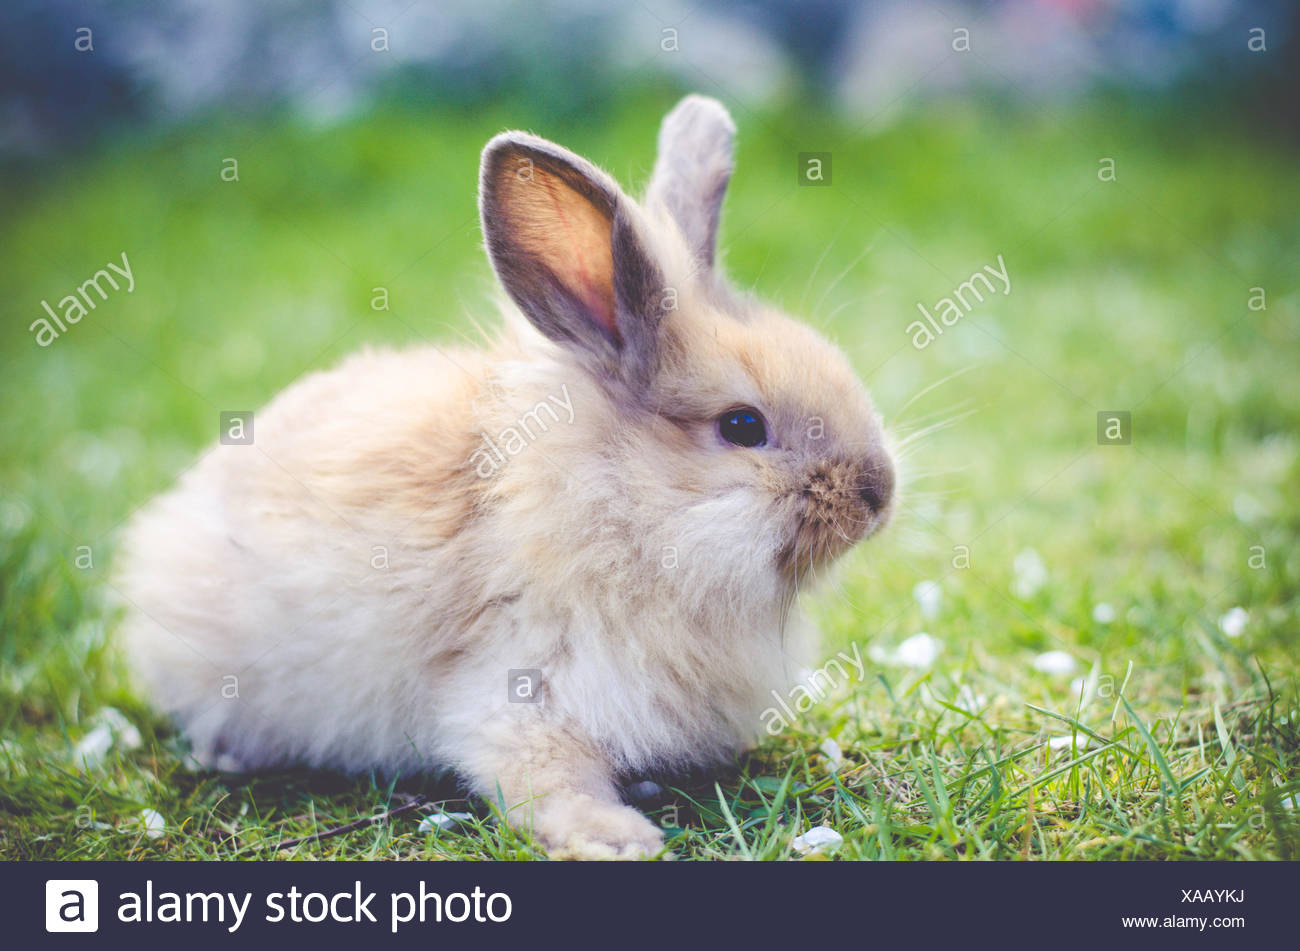 Rabbit sitting on grass Photo Stock